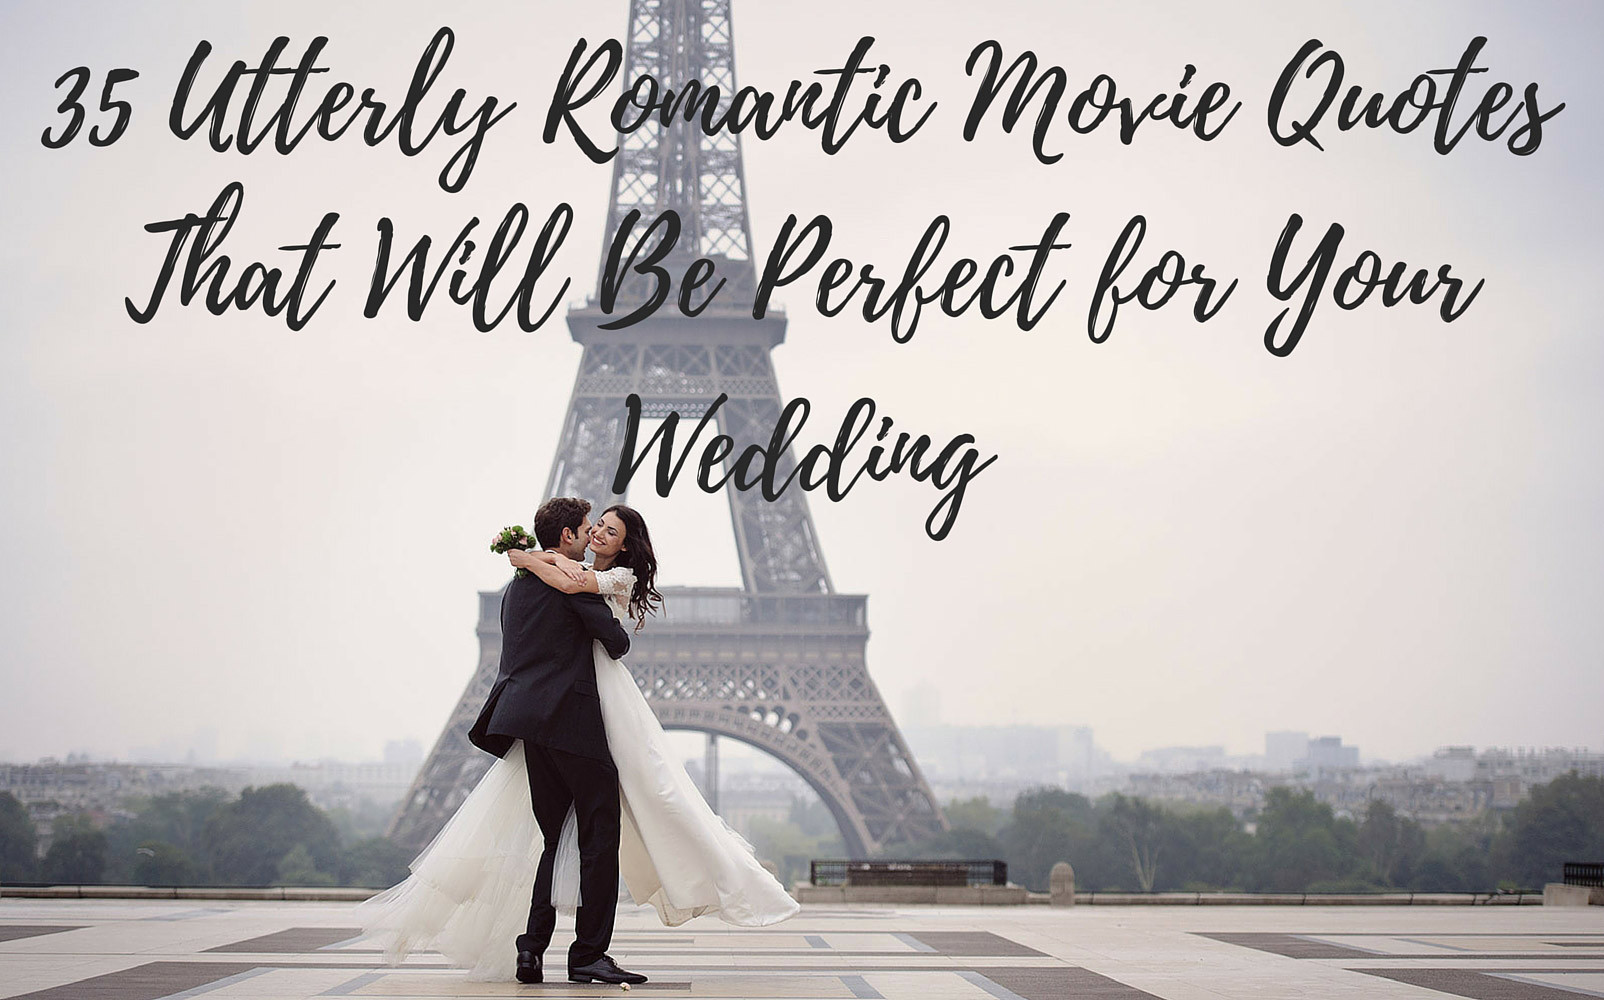 Quotes From Romantic Movies  Utterly Romantic Quotes from Movies